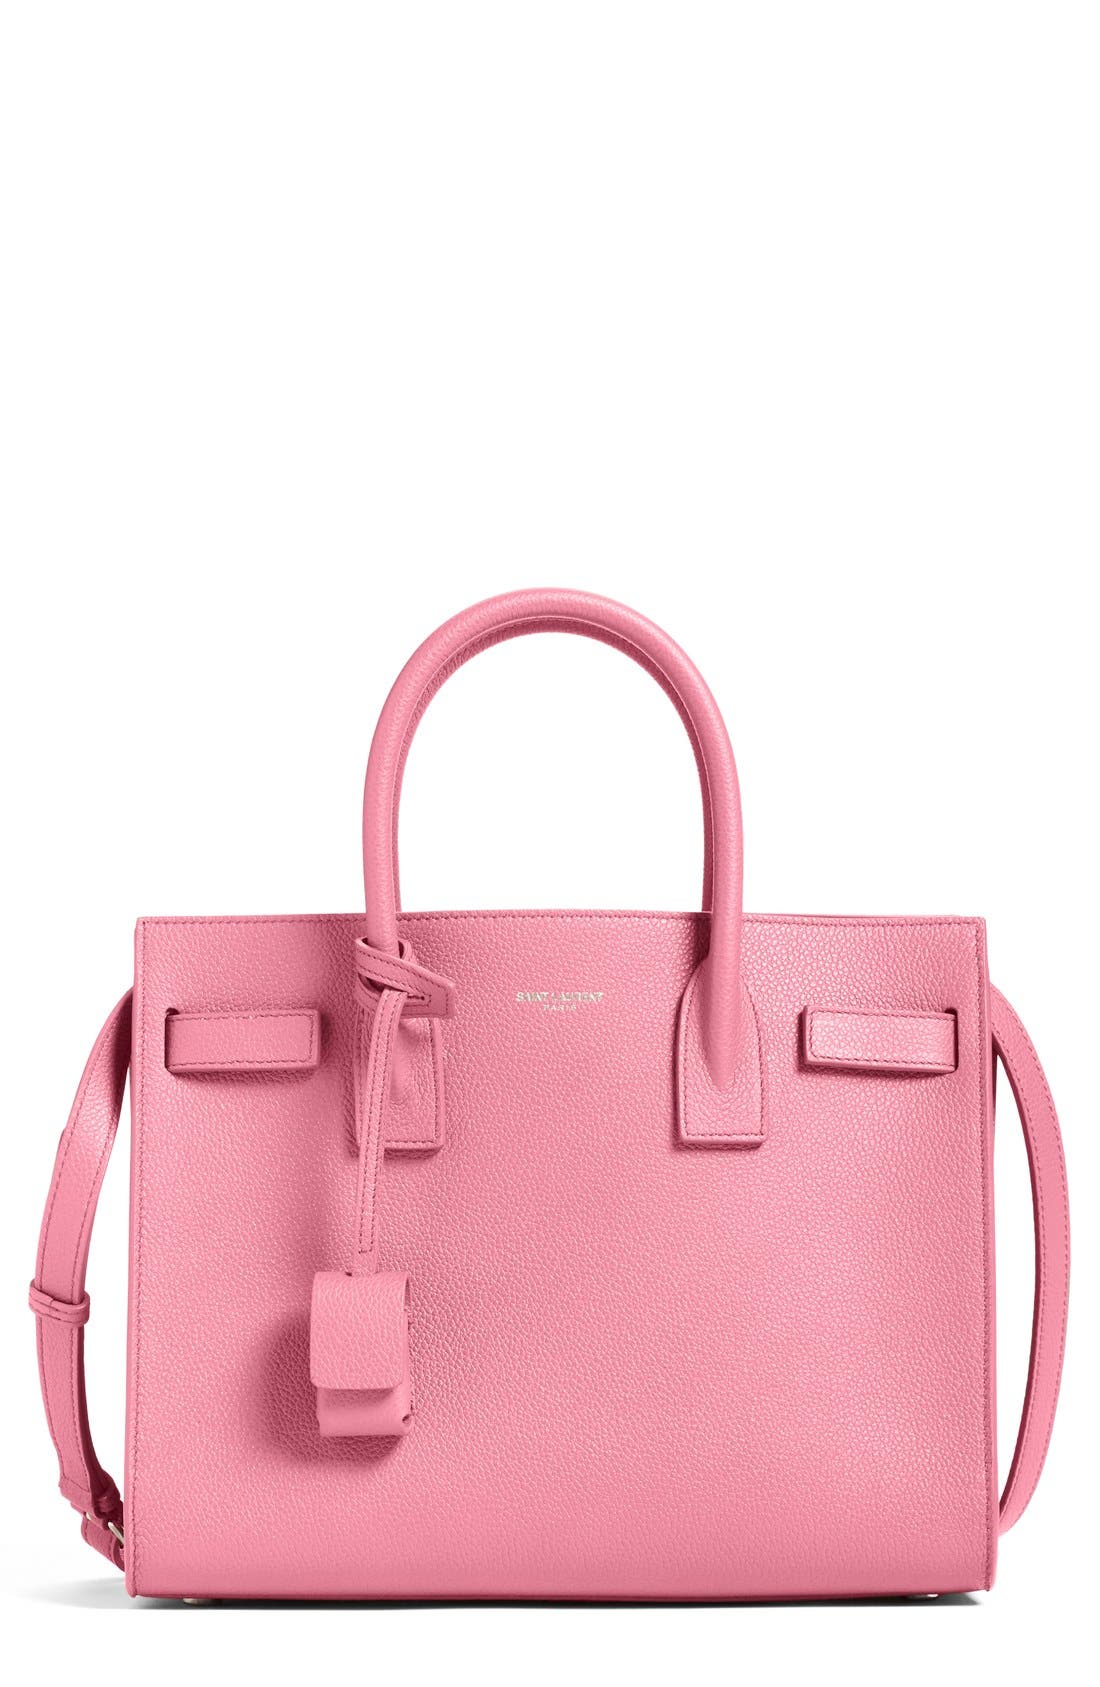 'Baby Sac de Jour' Bonded Leather Tote,                             Main thumbnail 1, color,                             Pink